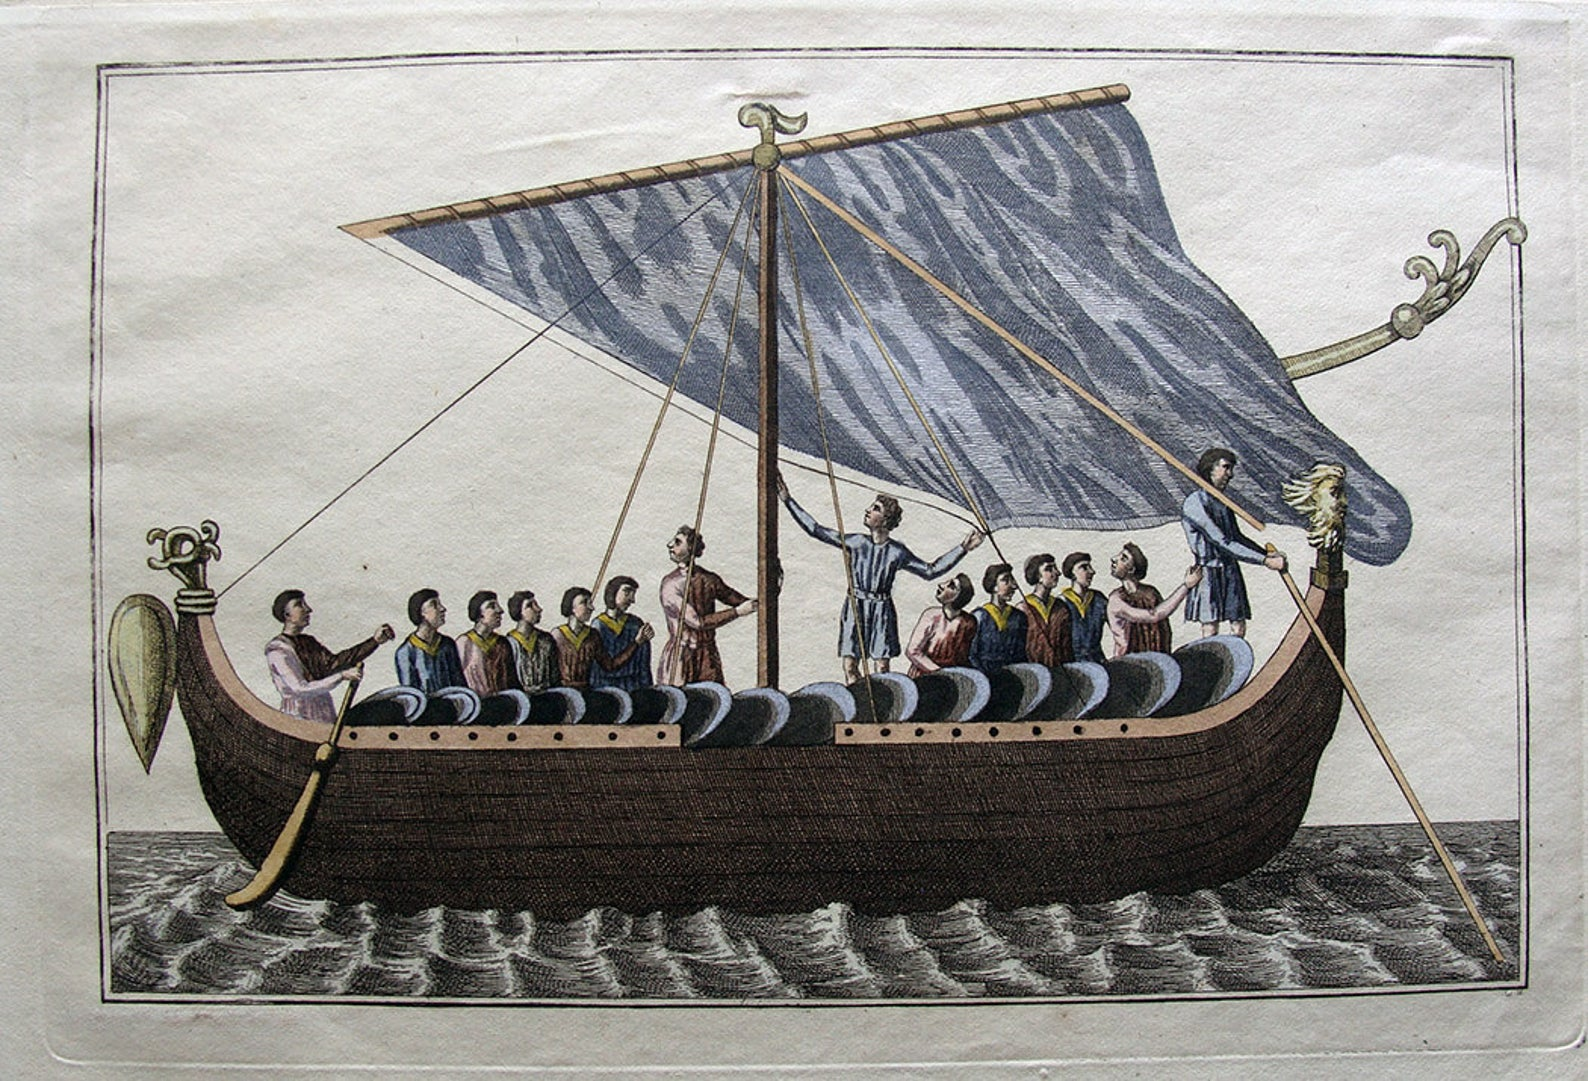 Anglo-Saxon ship before the Norman invasion